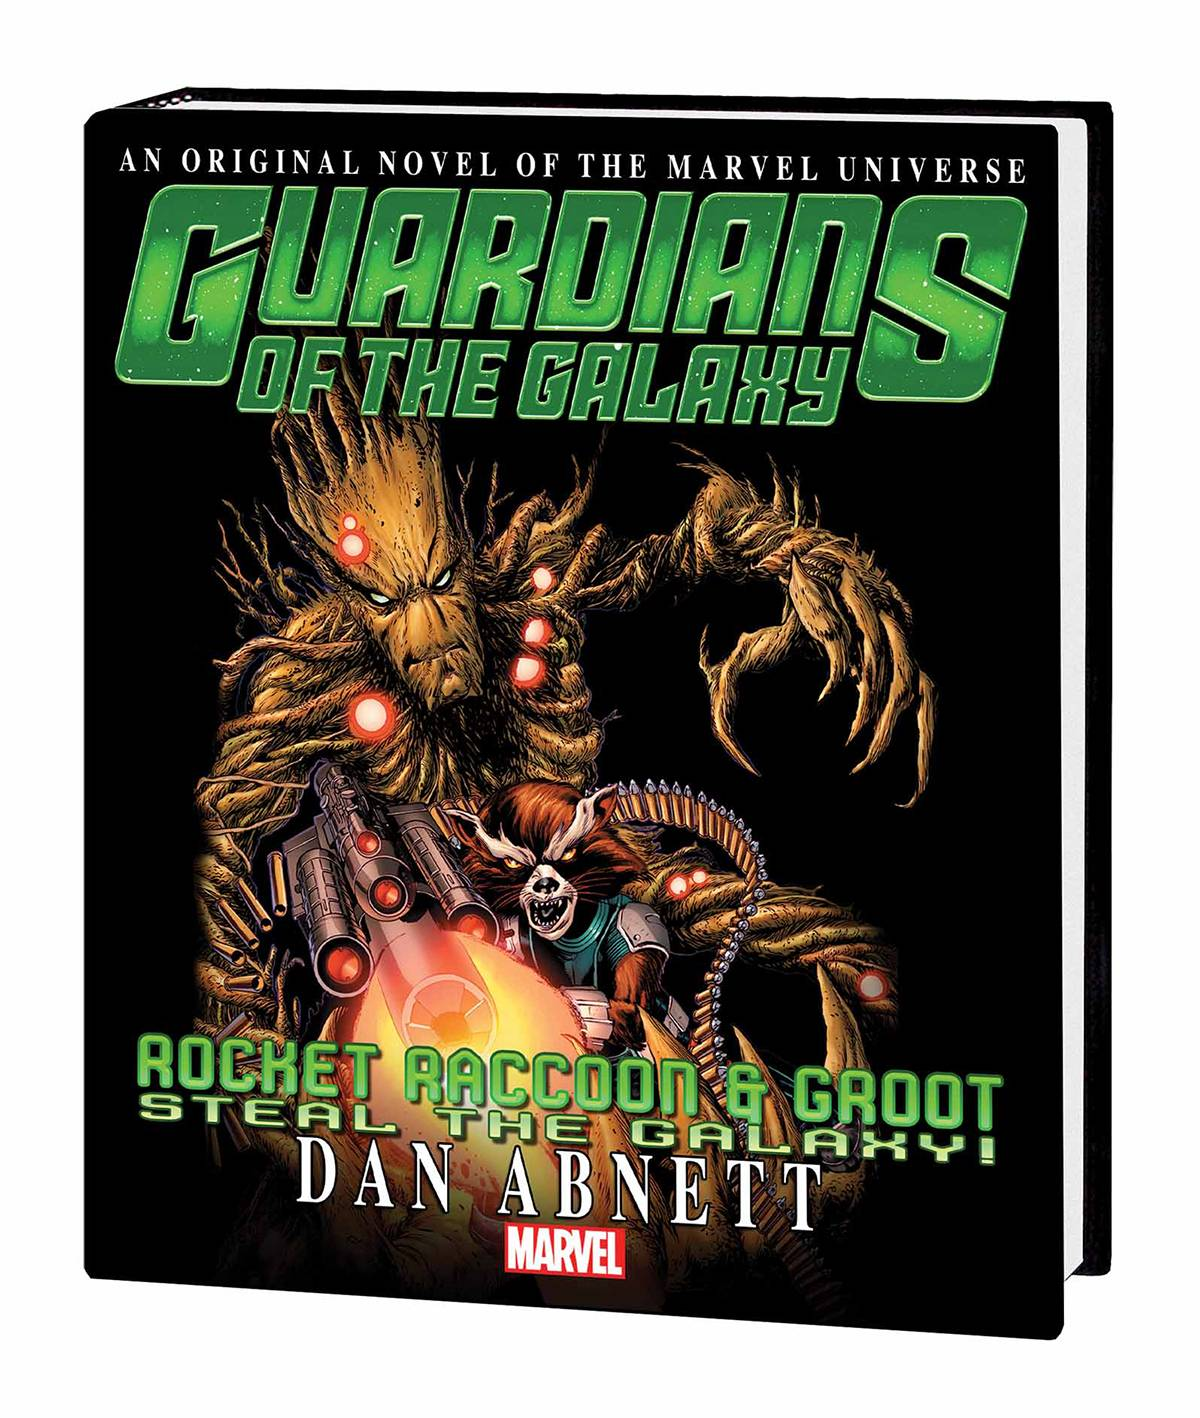 GOTG RR AND GROOT STEAL GALAXY PROSE NOVEL MARKET TP (RES)